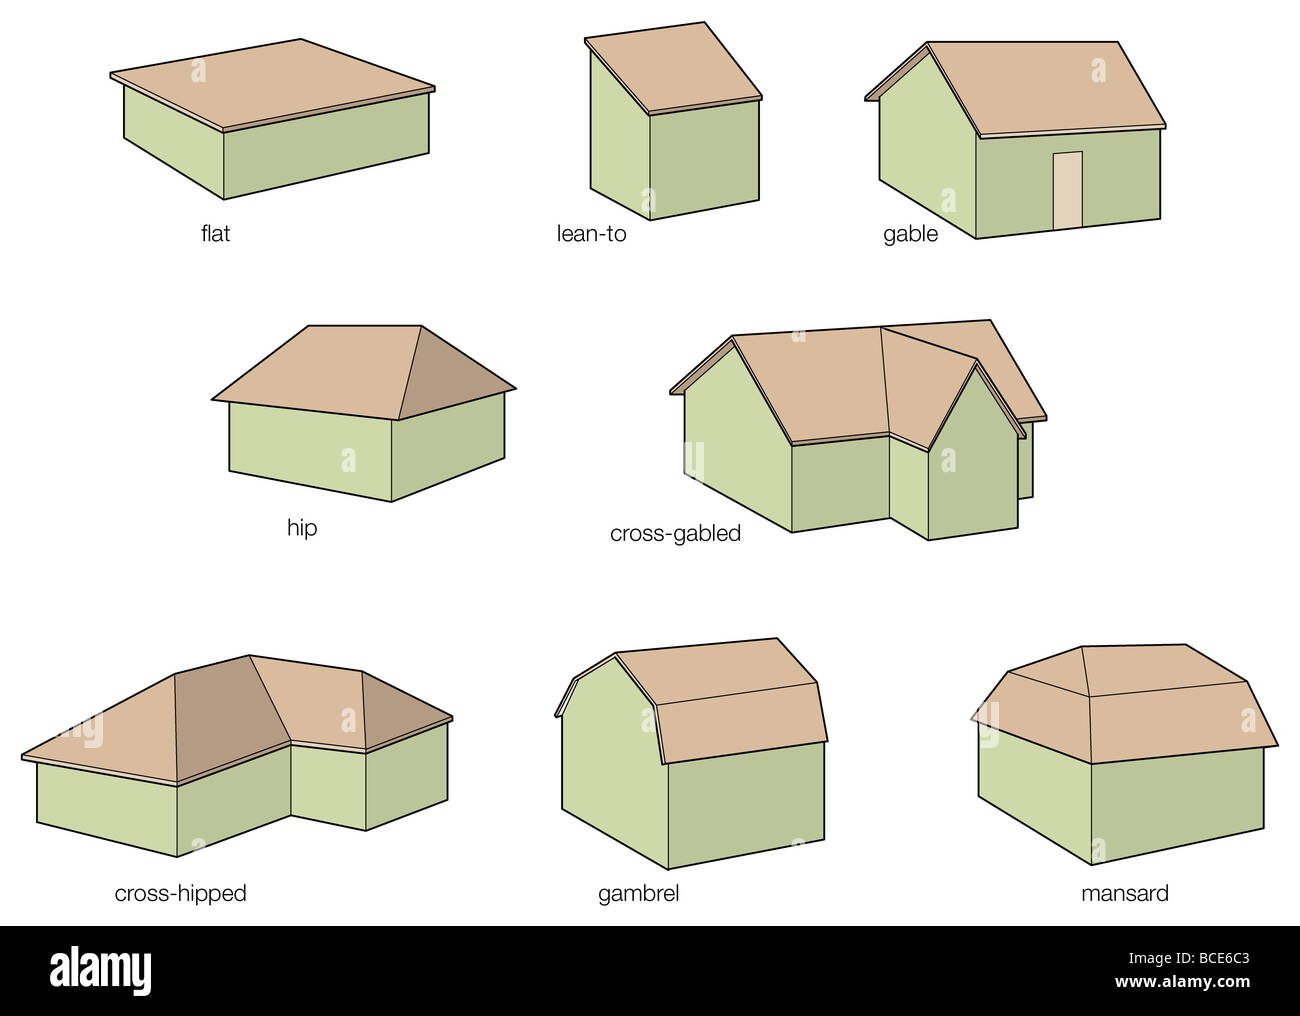 Several Basic Roof Designs.   Stock Image